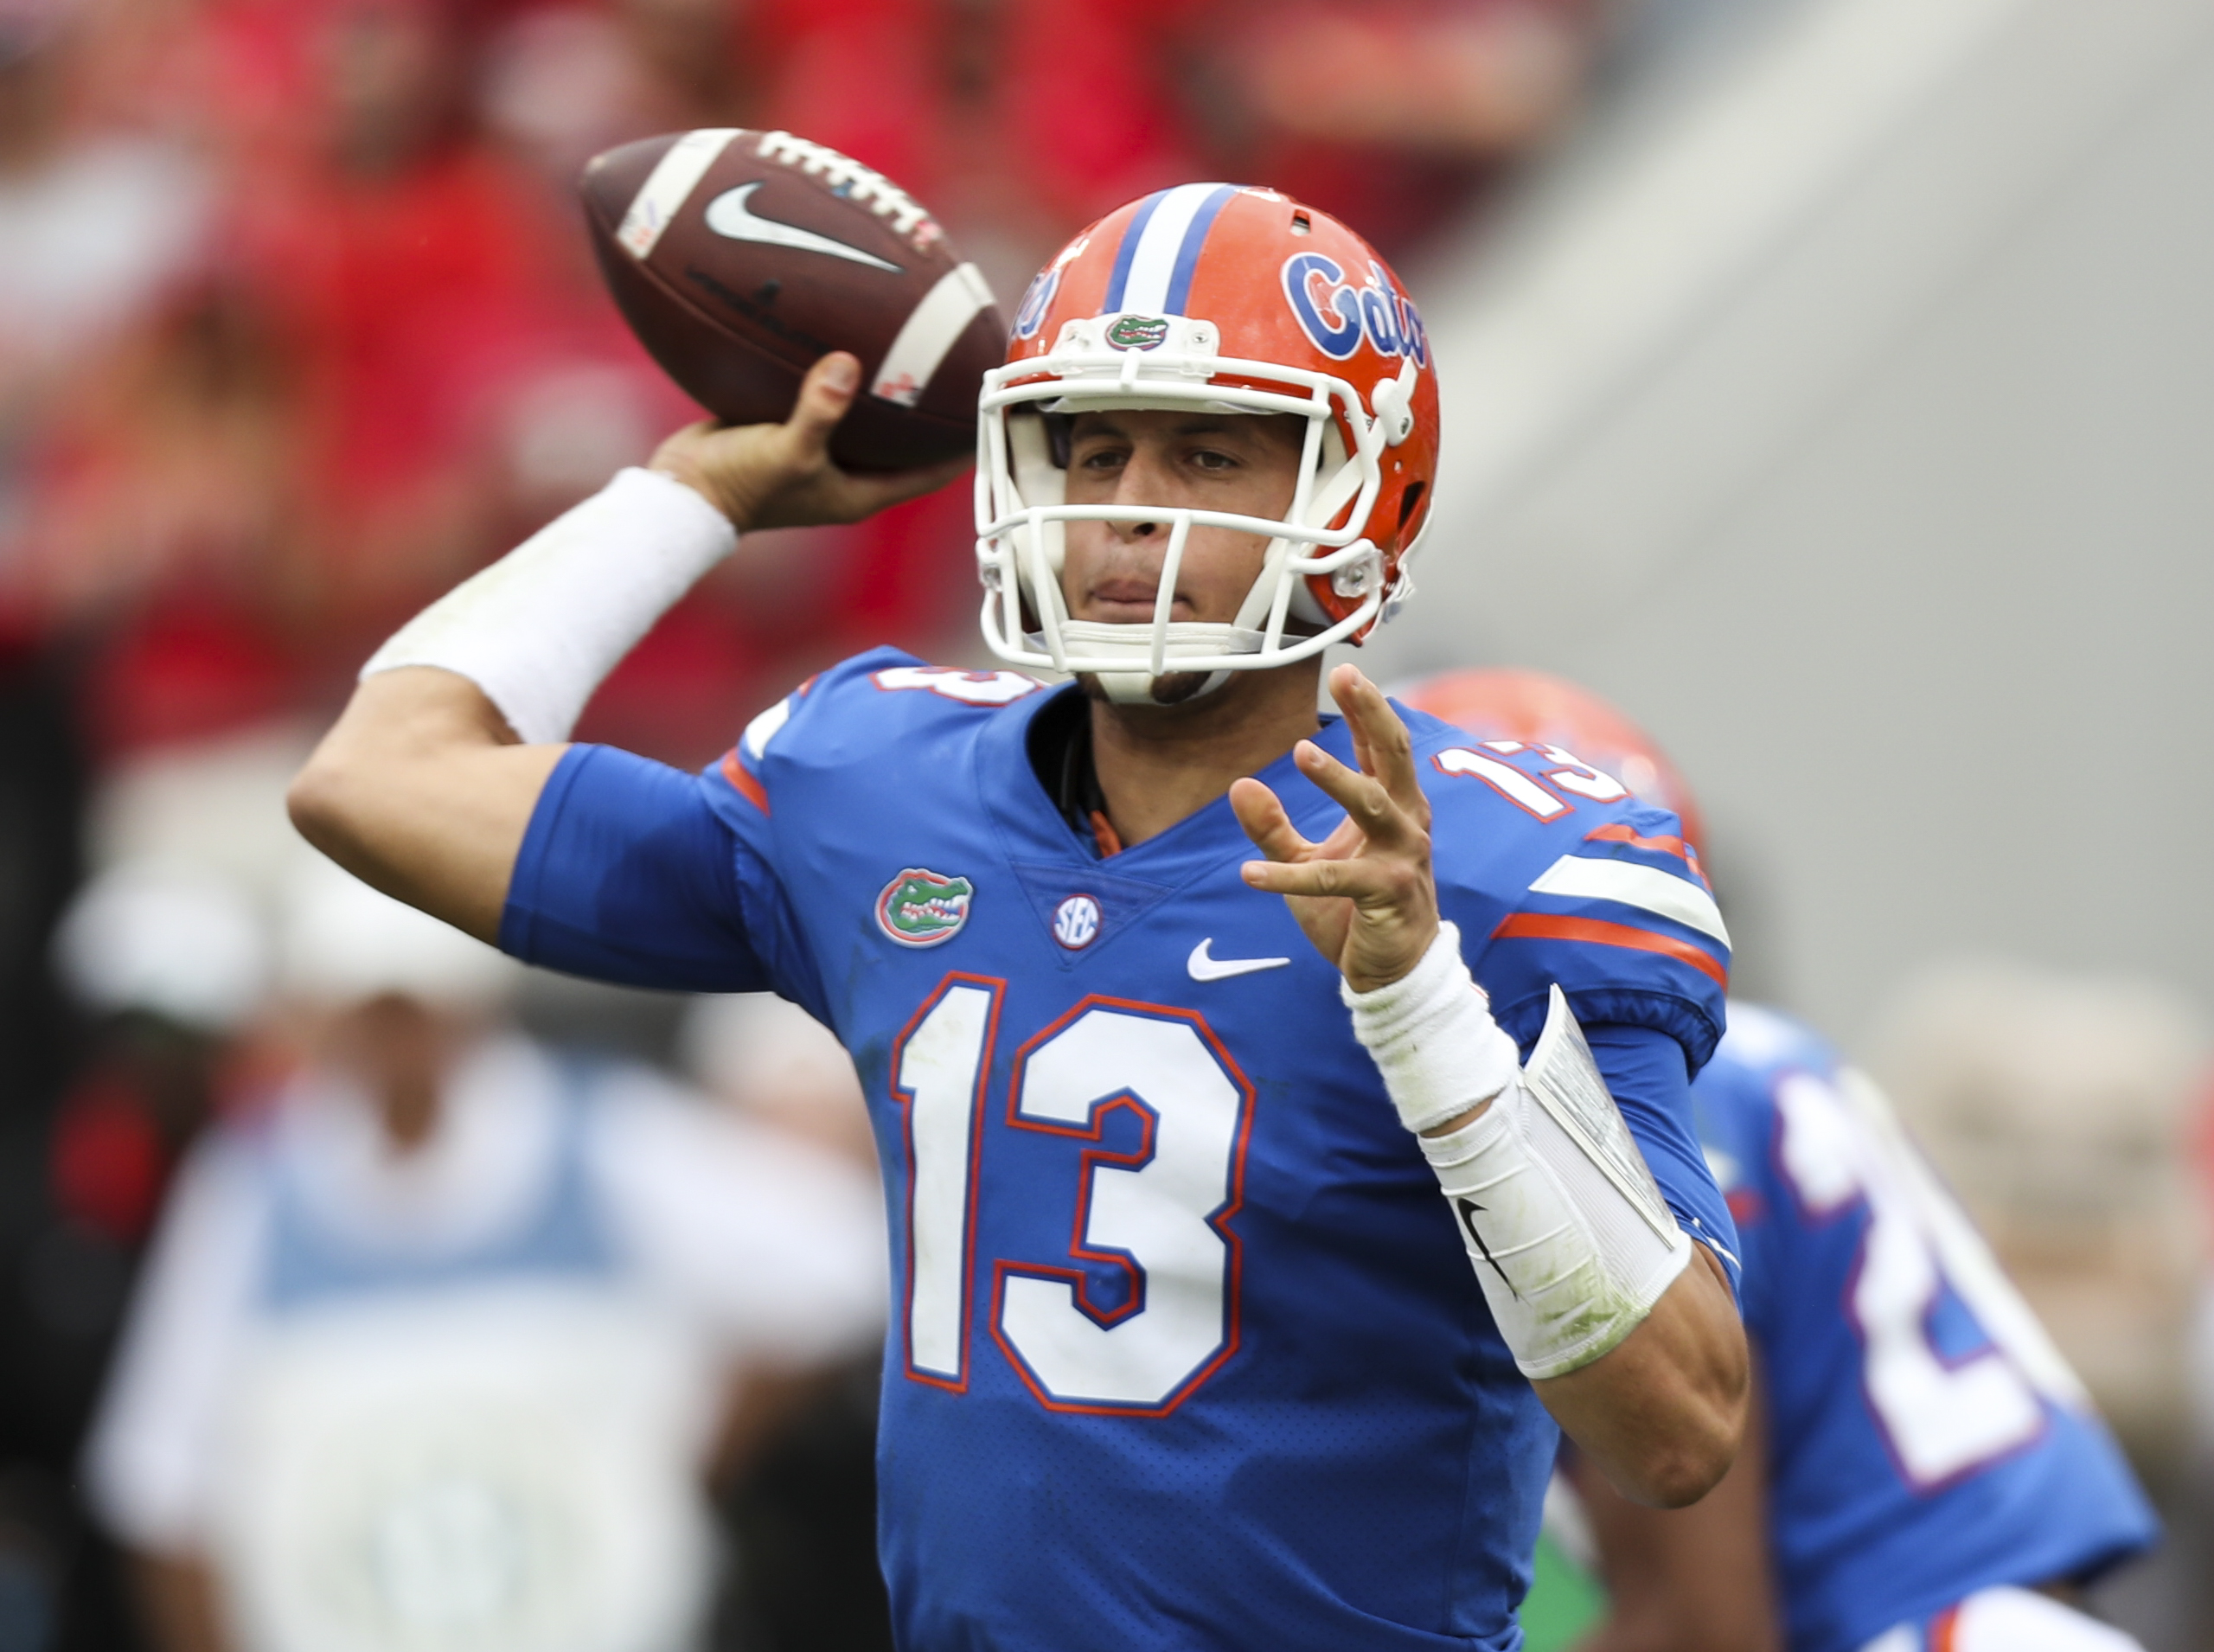 sports shoes 6bf0e 4b023 Feleipe Franks to start for Florida Gators on Saturday